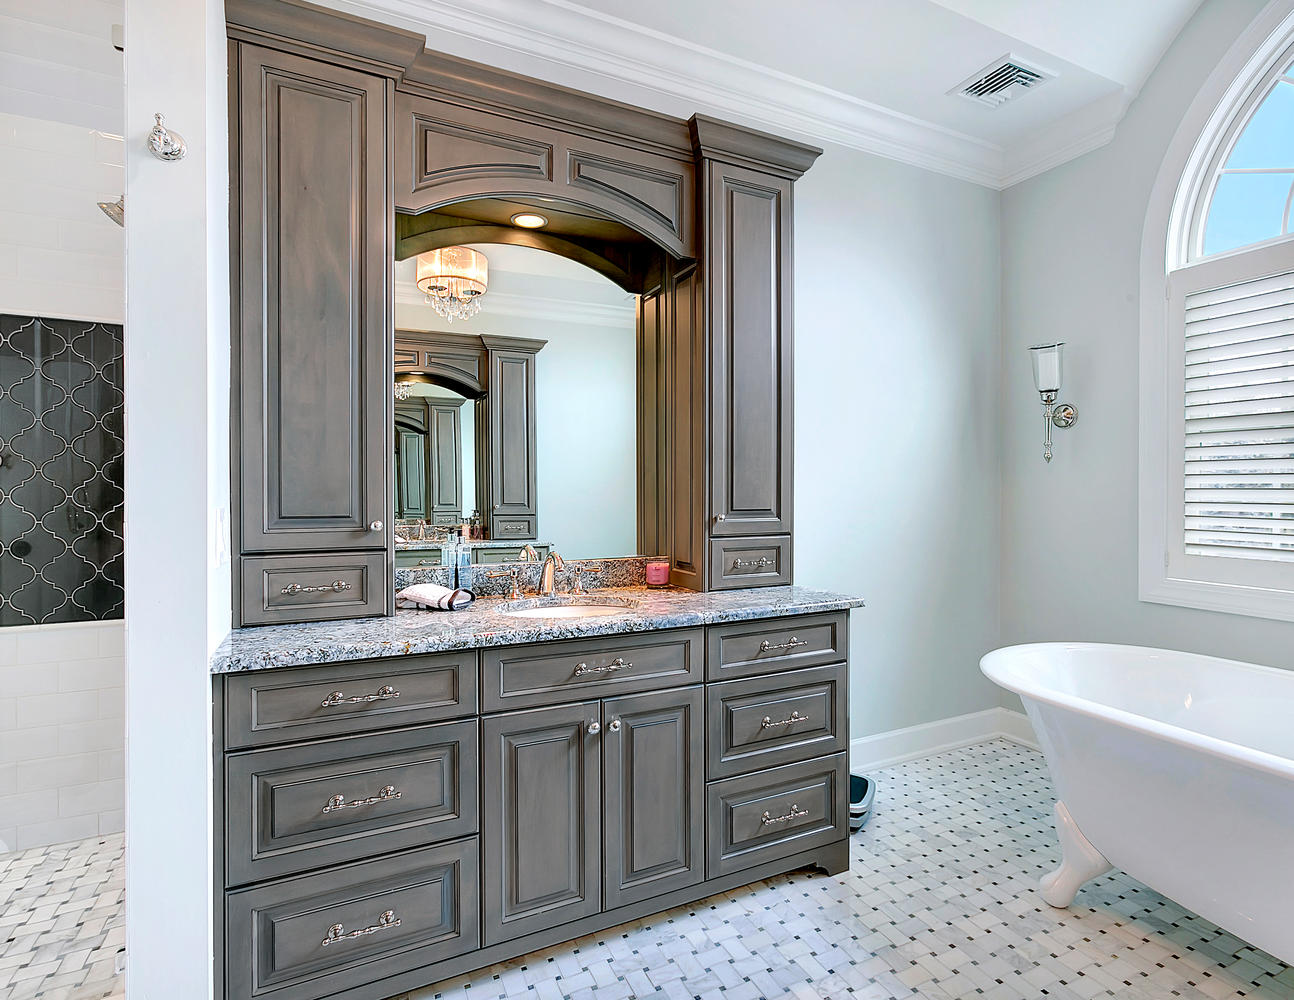 Vanities For Bathroom Nj custom vanity / bathroom cabinetry | design line kitchens in sea